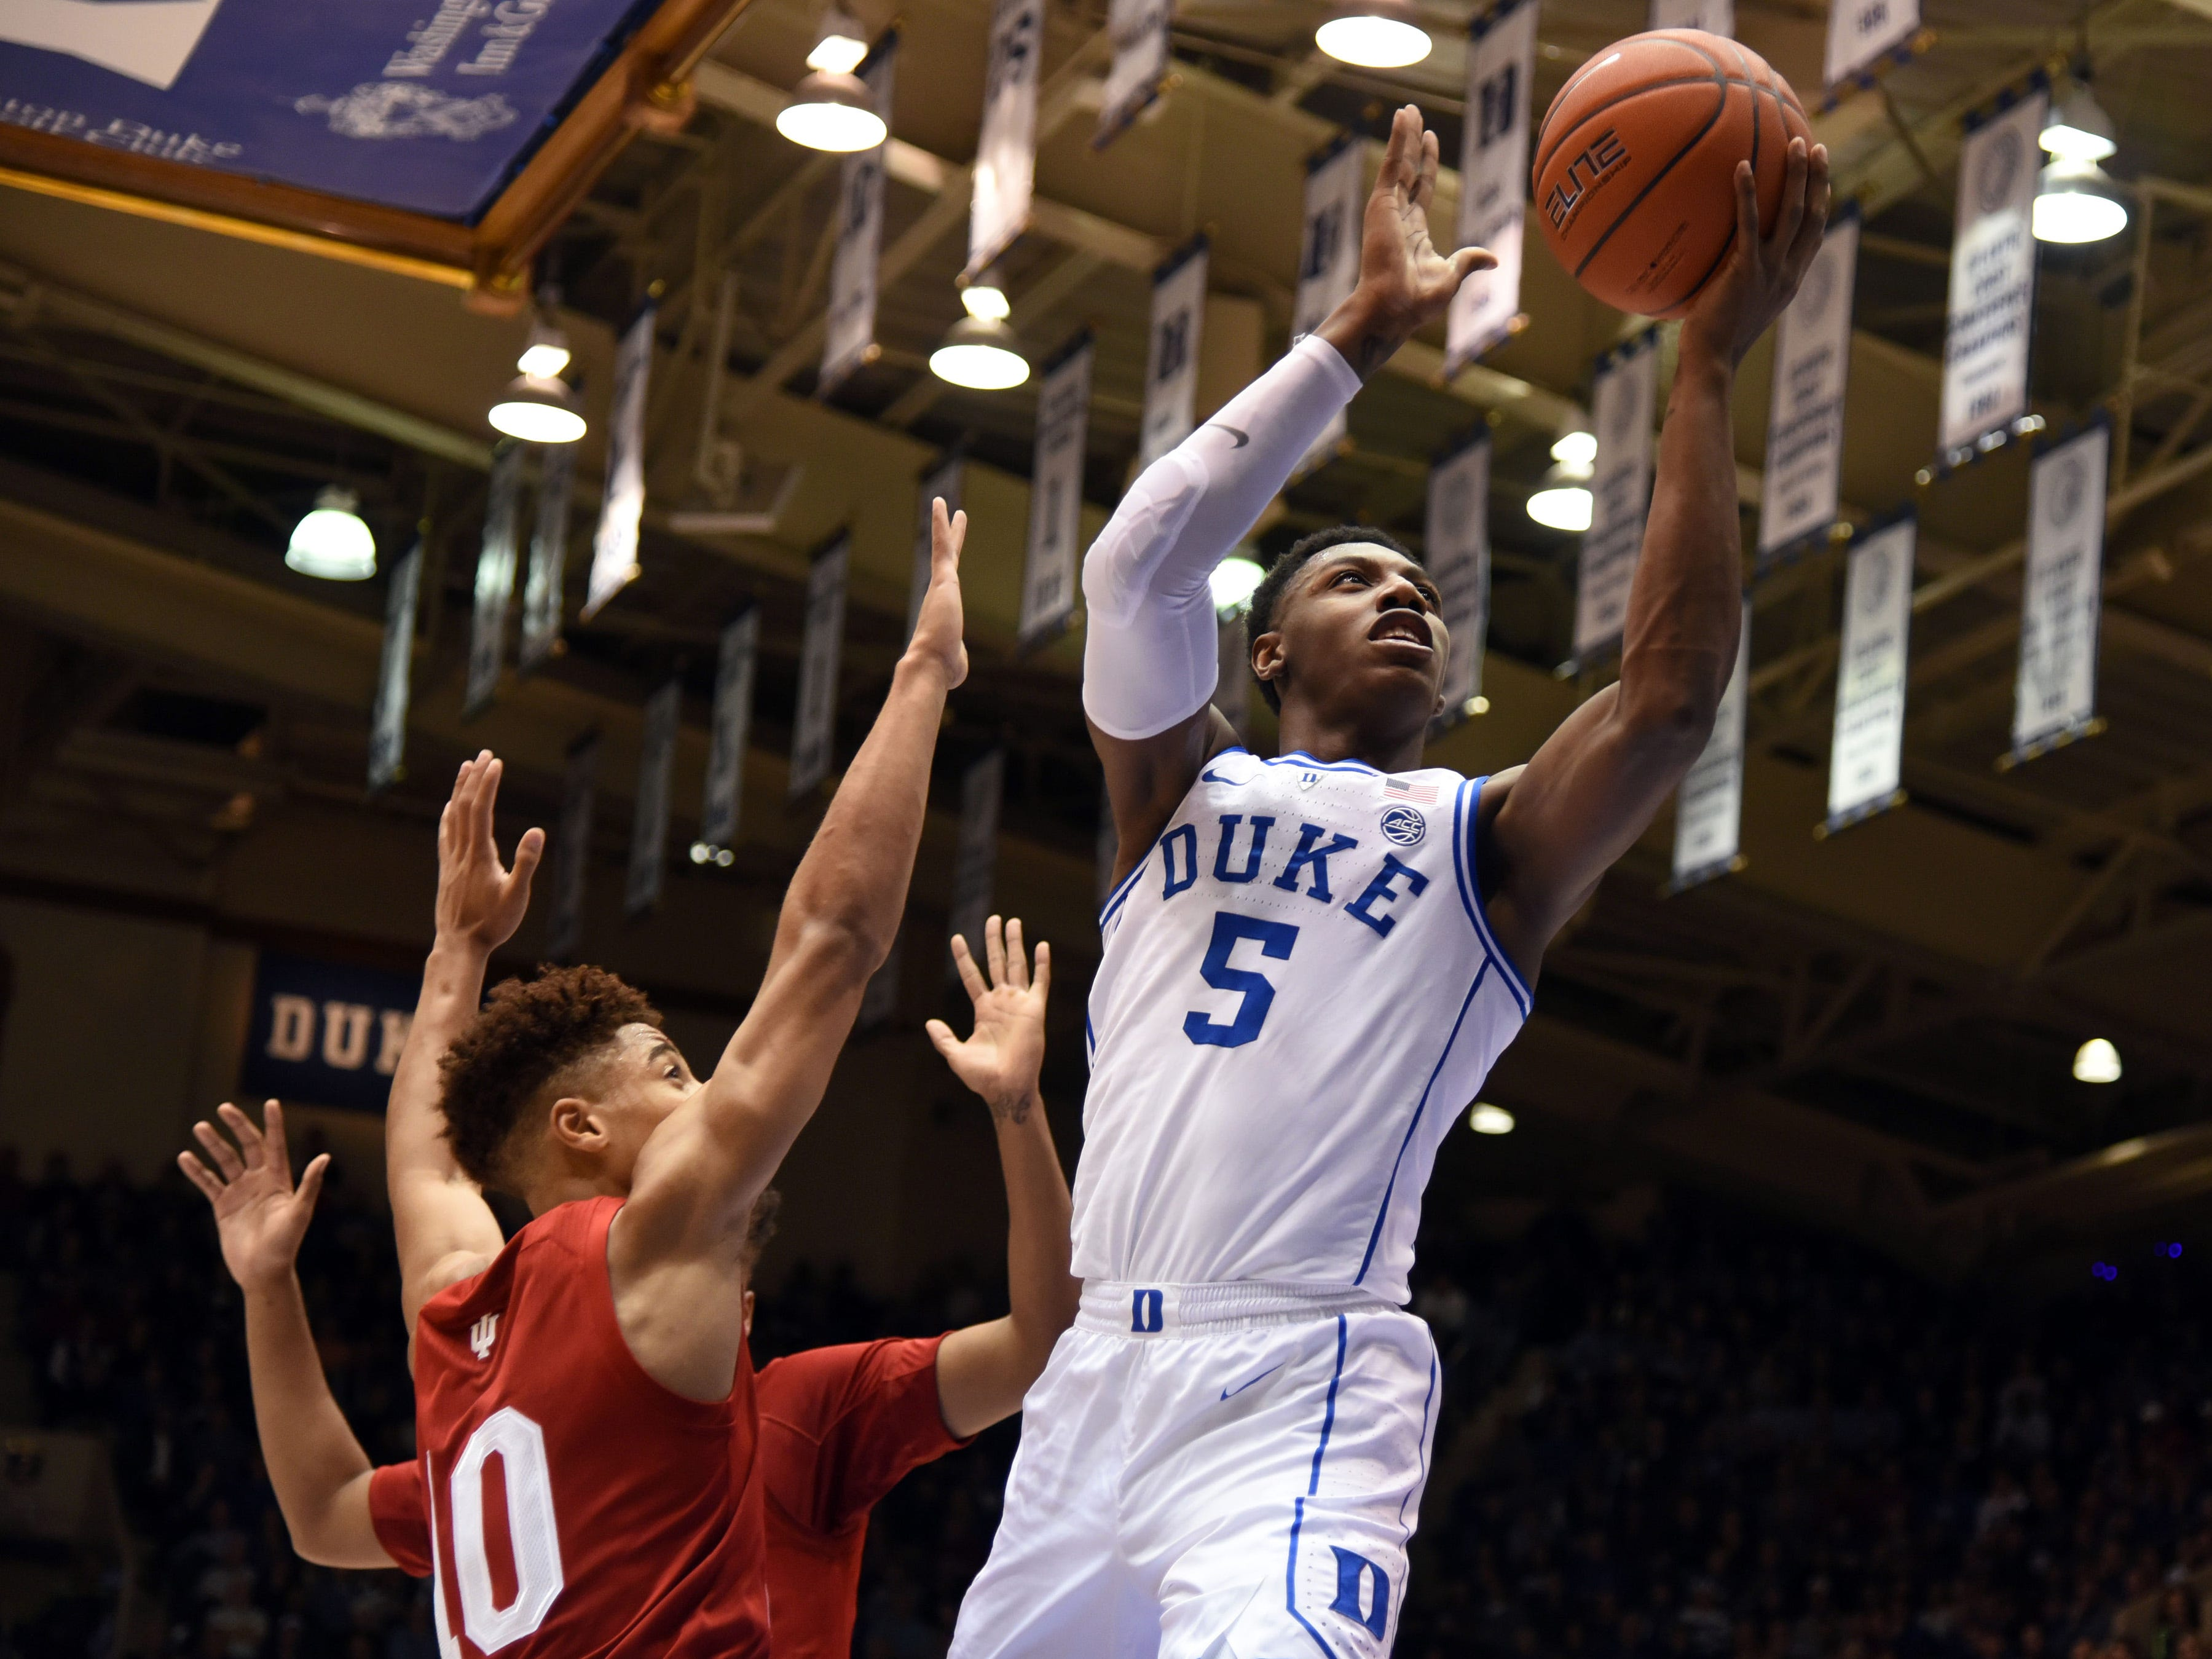 Nov 27, 2018; Durham, NC, USA; Duke Blue Devils forward R.J. Barrett (5) shoots in front of Indiana Hoosiers guard Rob Phinisee (10) during the first half at Cameron Indoor Stadium.